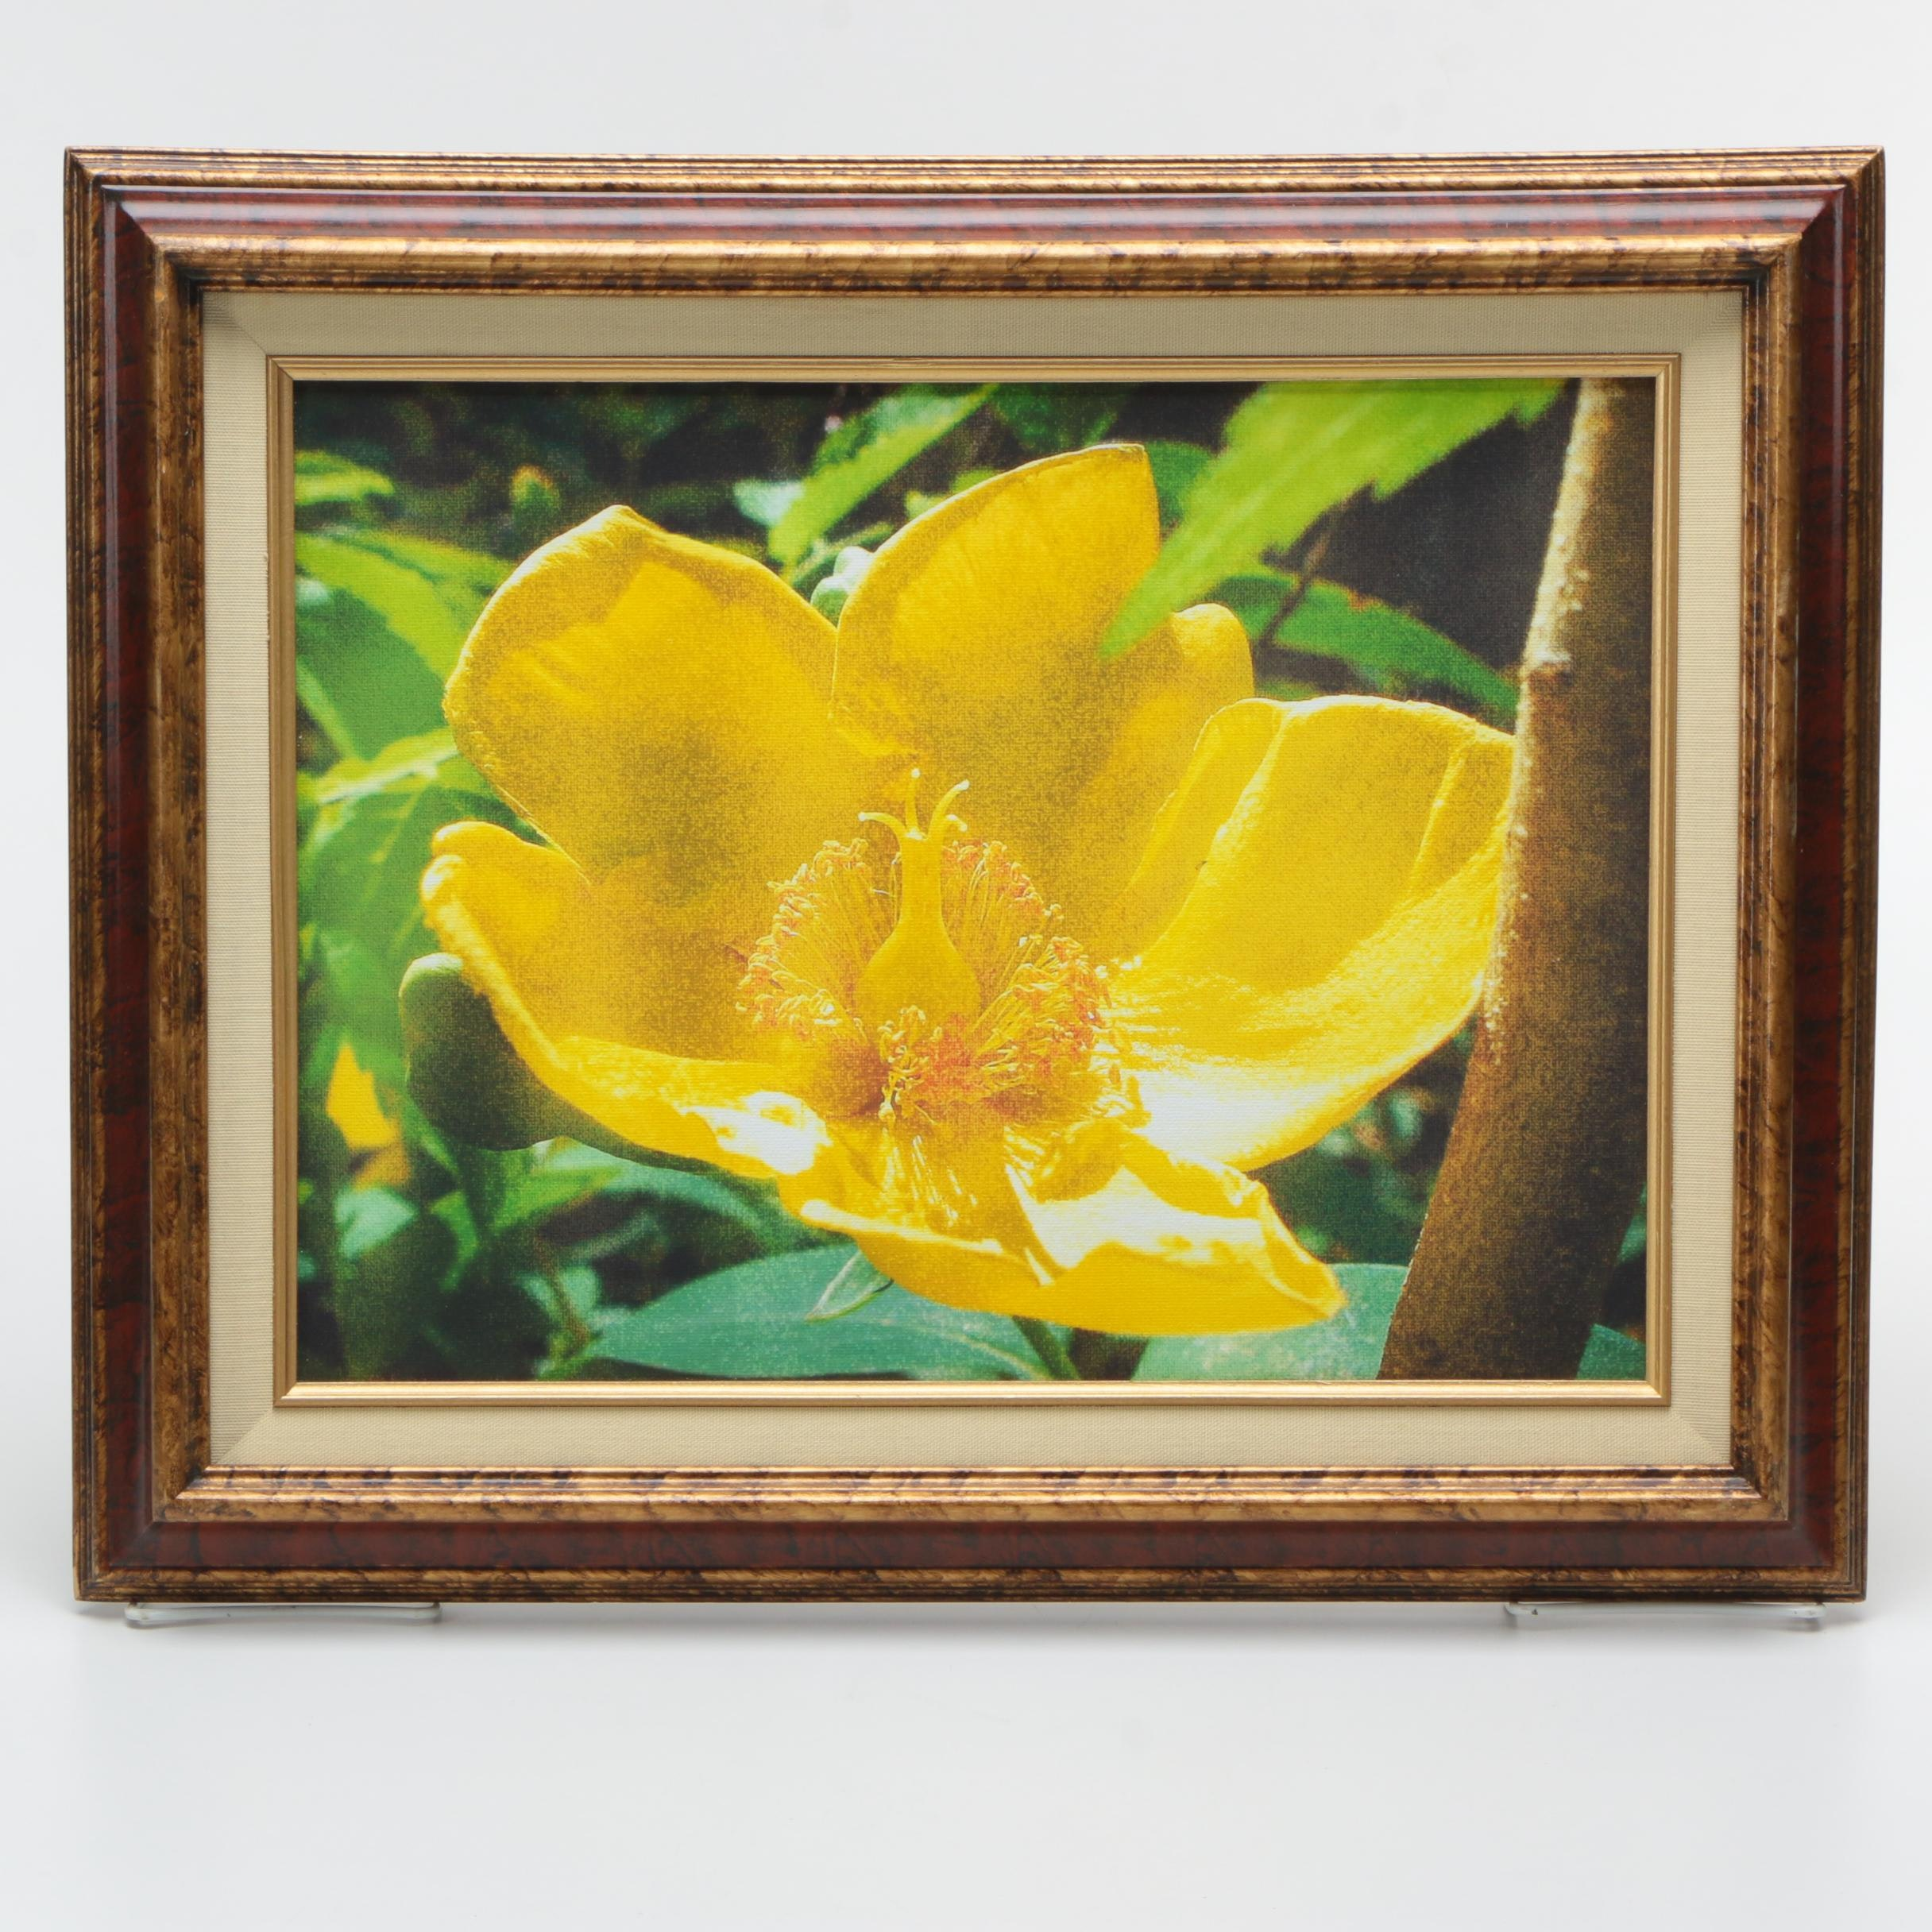 Giclee Print on Canvas of a Flower